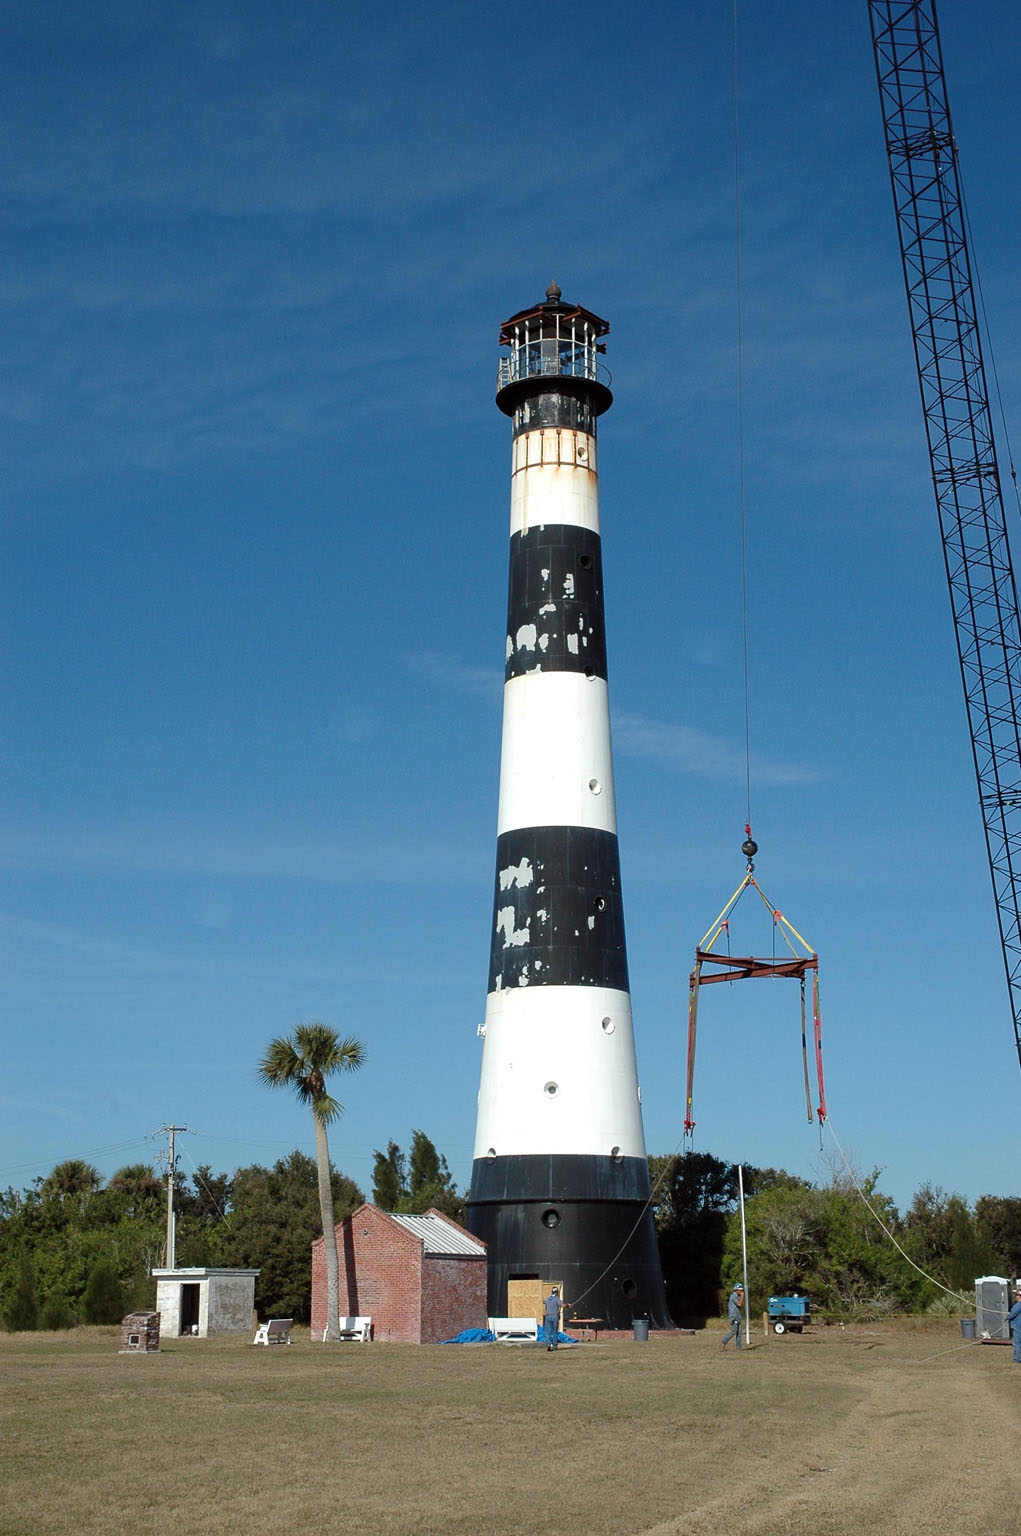 KENNEDY SPACE CENTER, FLA. - At Cape Canaveral Air Force Station, a crane is lifted near the Cape Canaveral Lighthouse for use in removing the lamp room at top. Leaks in the roof allowed moisture to seep in. The lamp room is being removed for repairs and refurbishment. In addition, the original brass roof will be restored and put back in place. The Cape Canaveral Lighthouse is the only operational lighthouse owned by the Air Force. It was first erected in 1868 near the edge of the Atlantic Ocean. Photo credit: NASA/Jack Pfaller